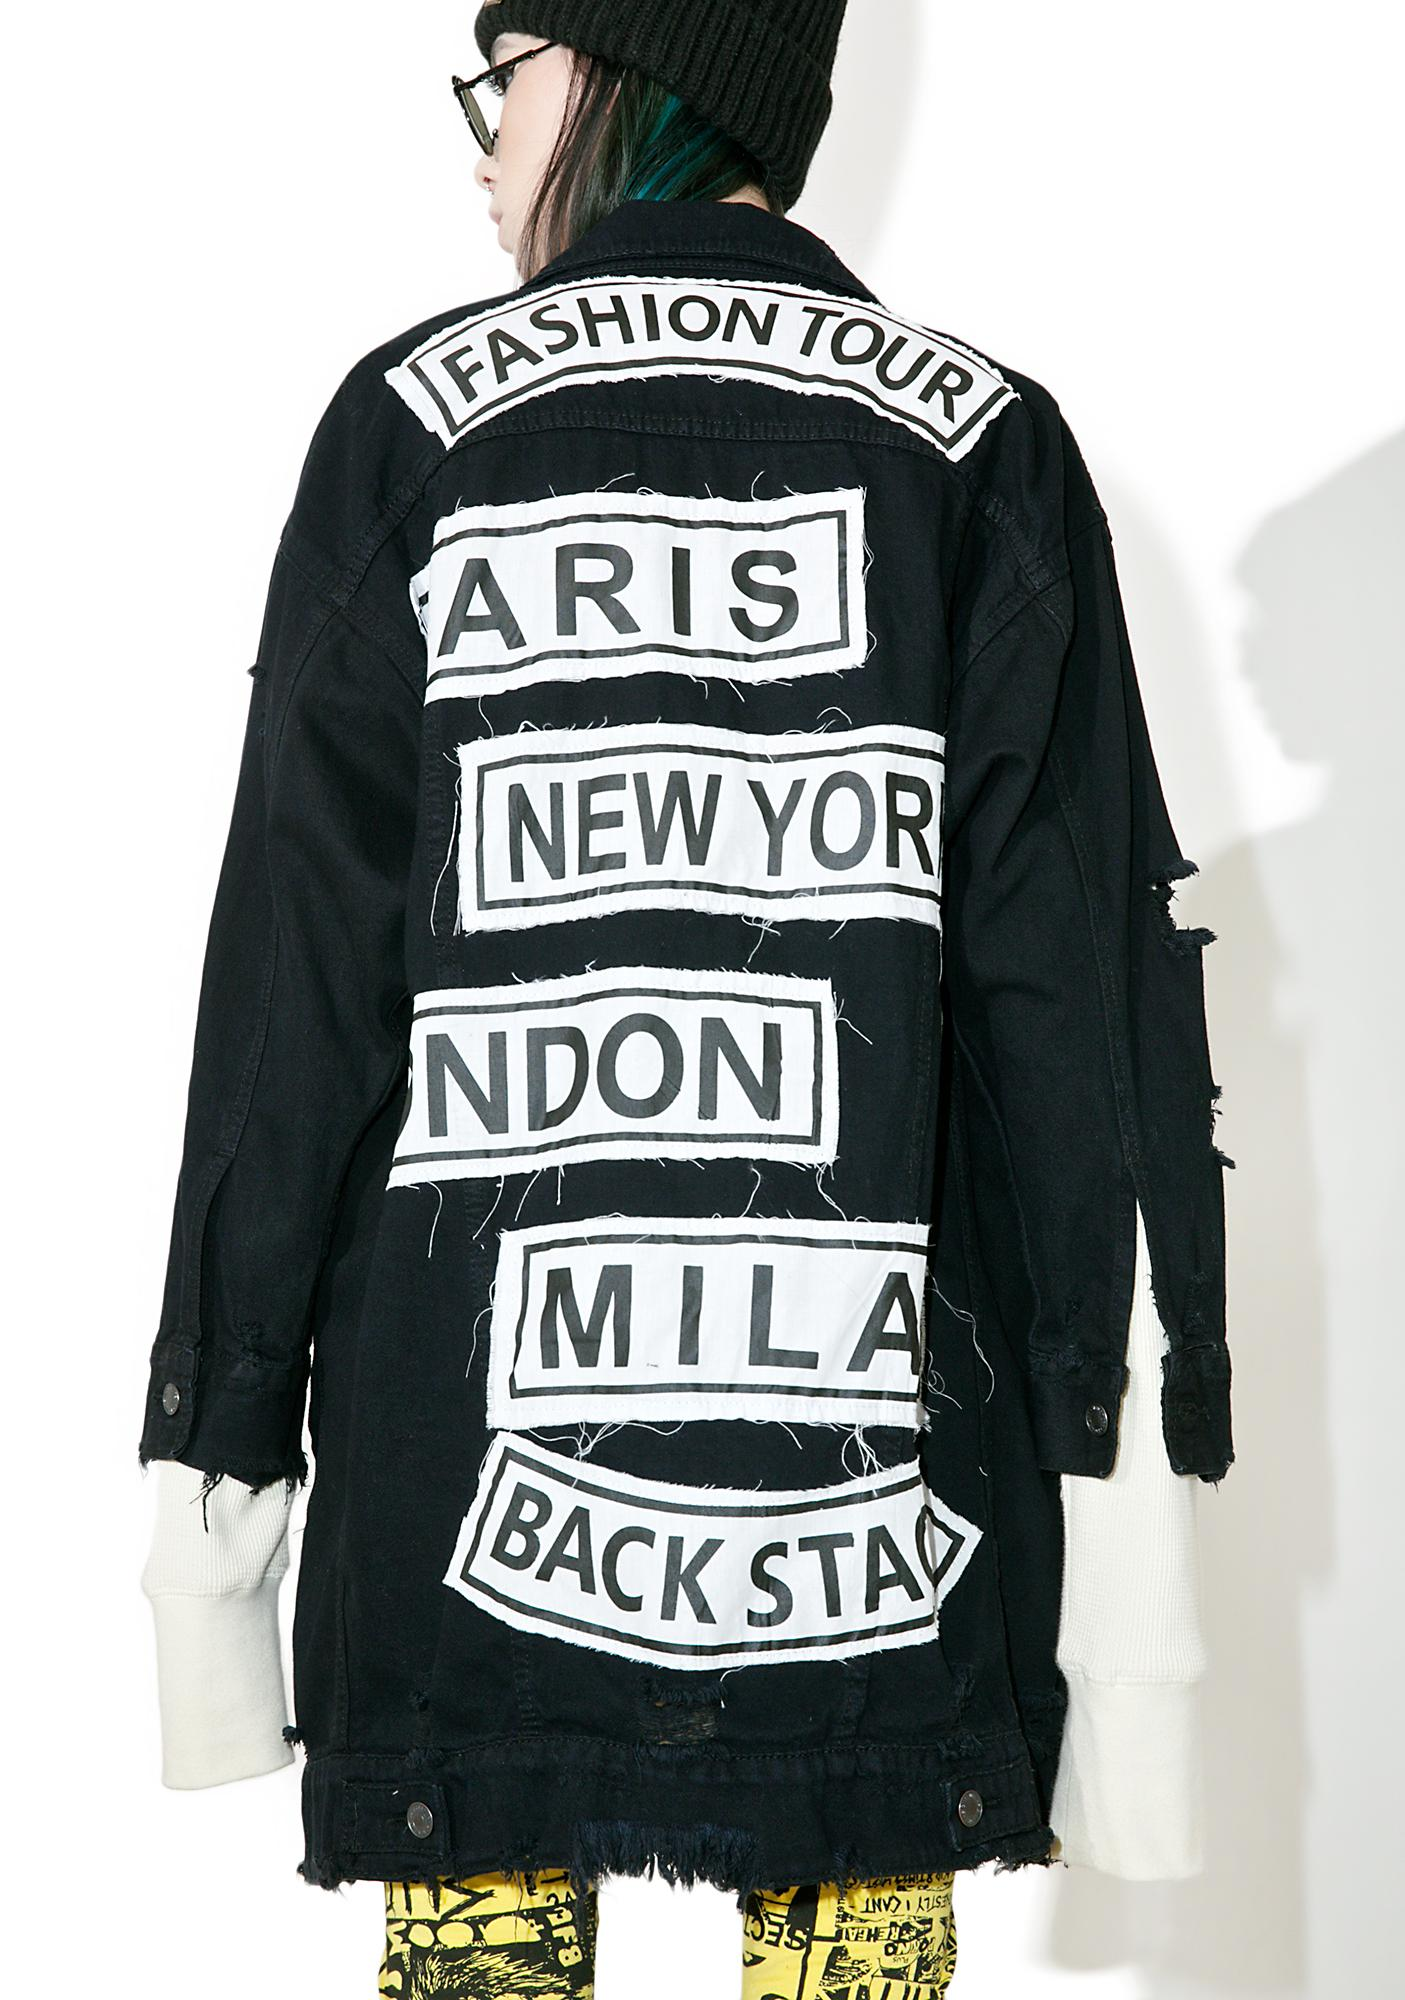 Catwalk Fashion Tour Denim Jacket